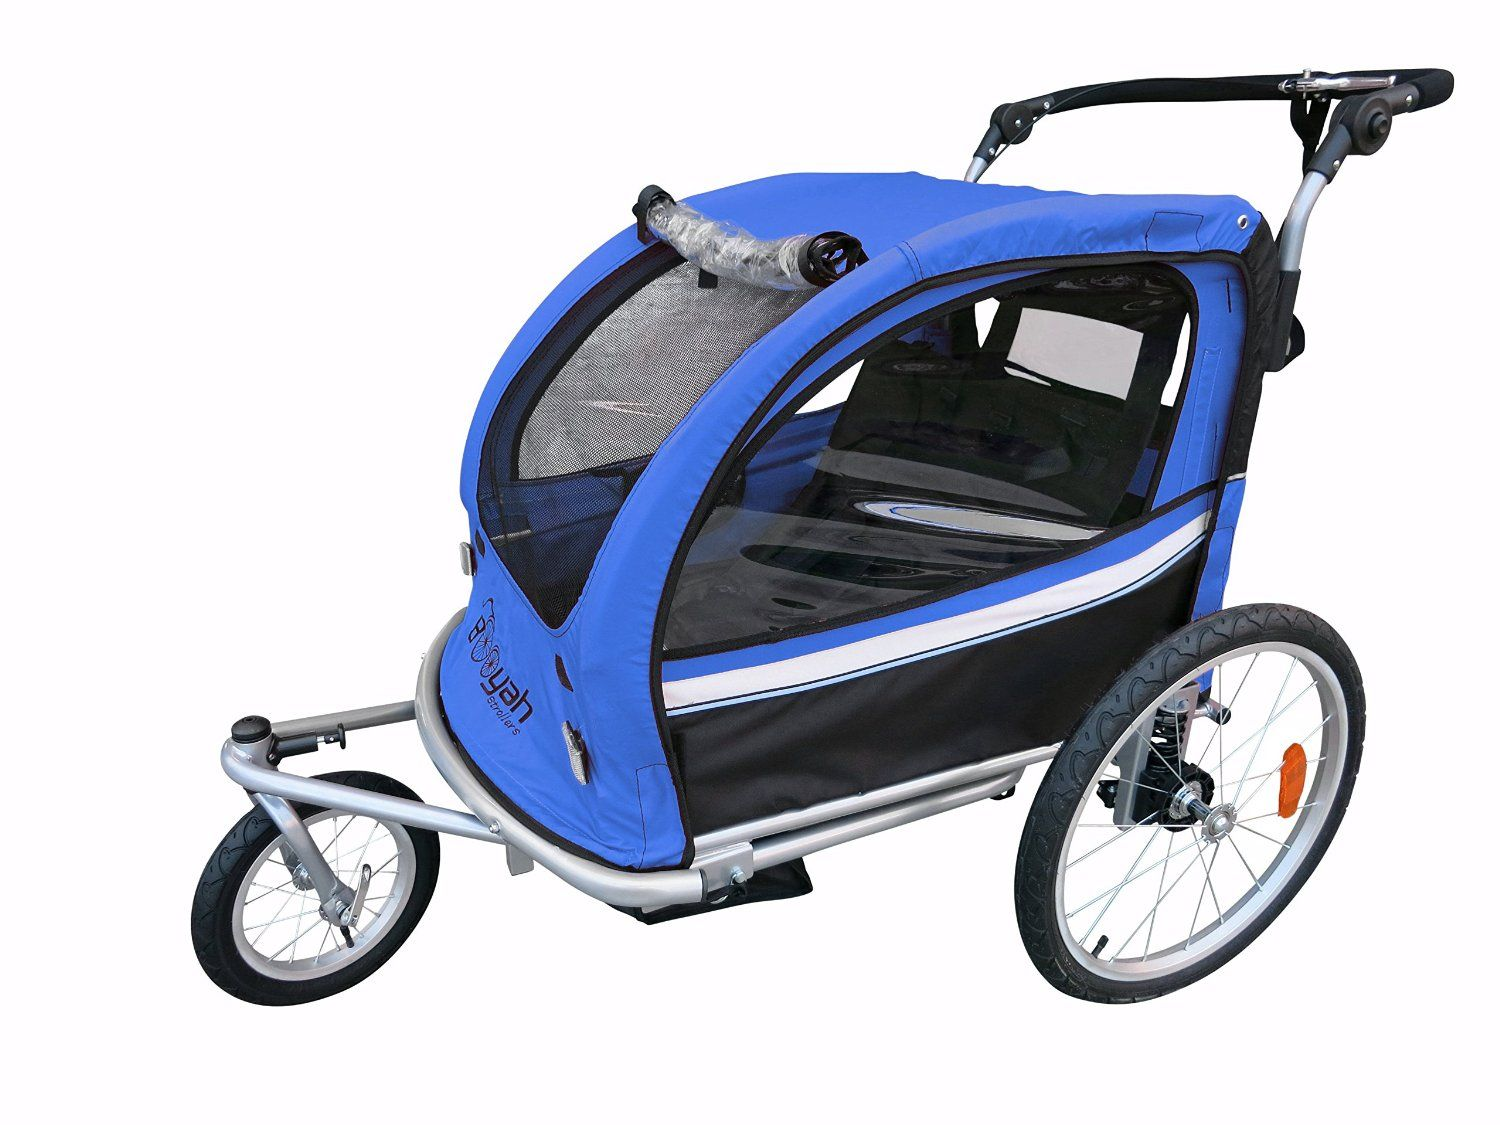 Booyah Strollers Child Baby Bike Bicycle Trailer and